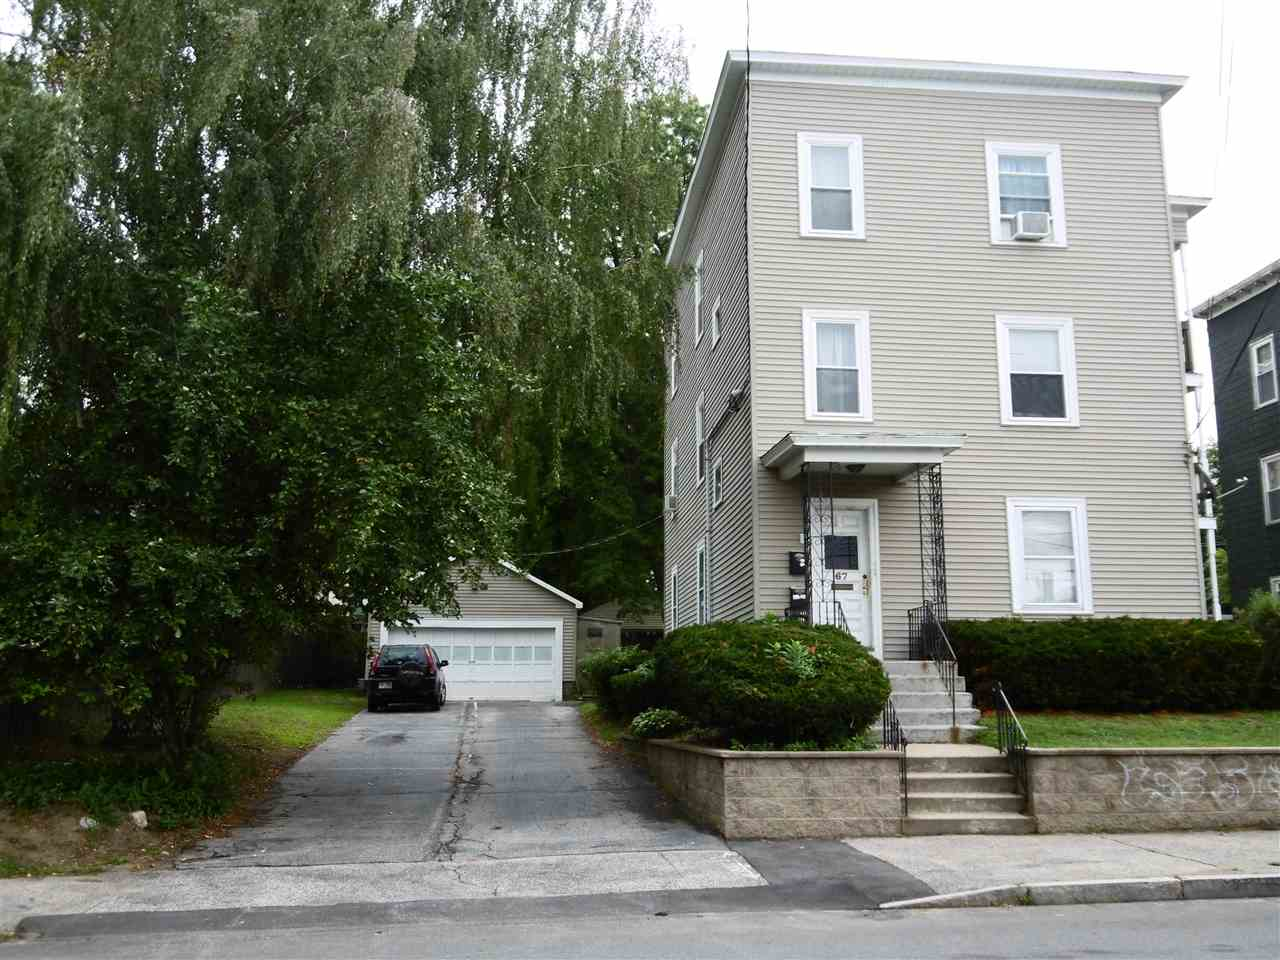 image of Manchester NH  3 Unit Multi Family | sq.ft. 3339